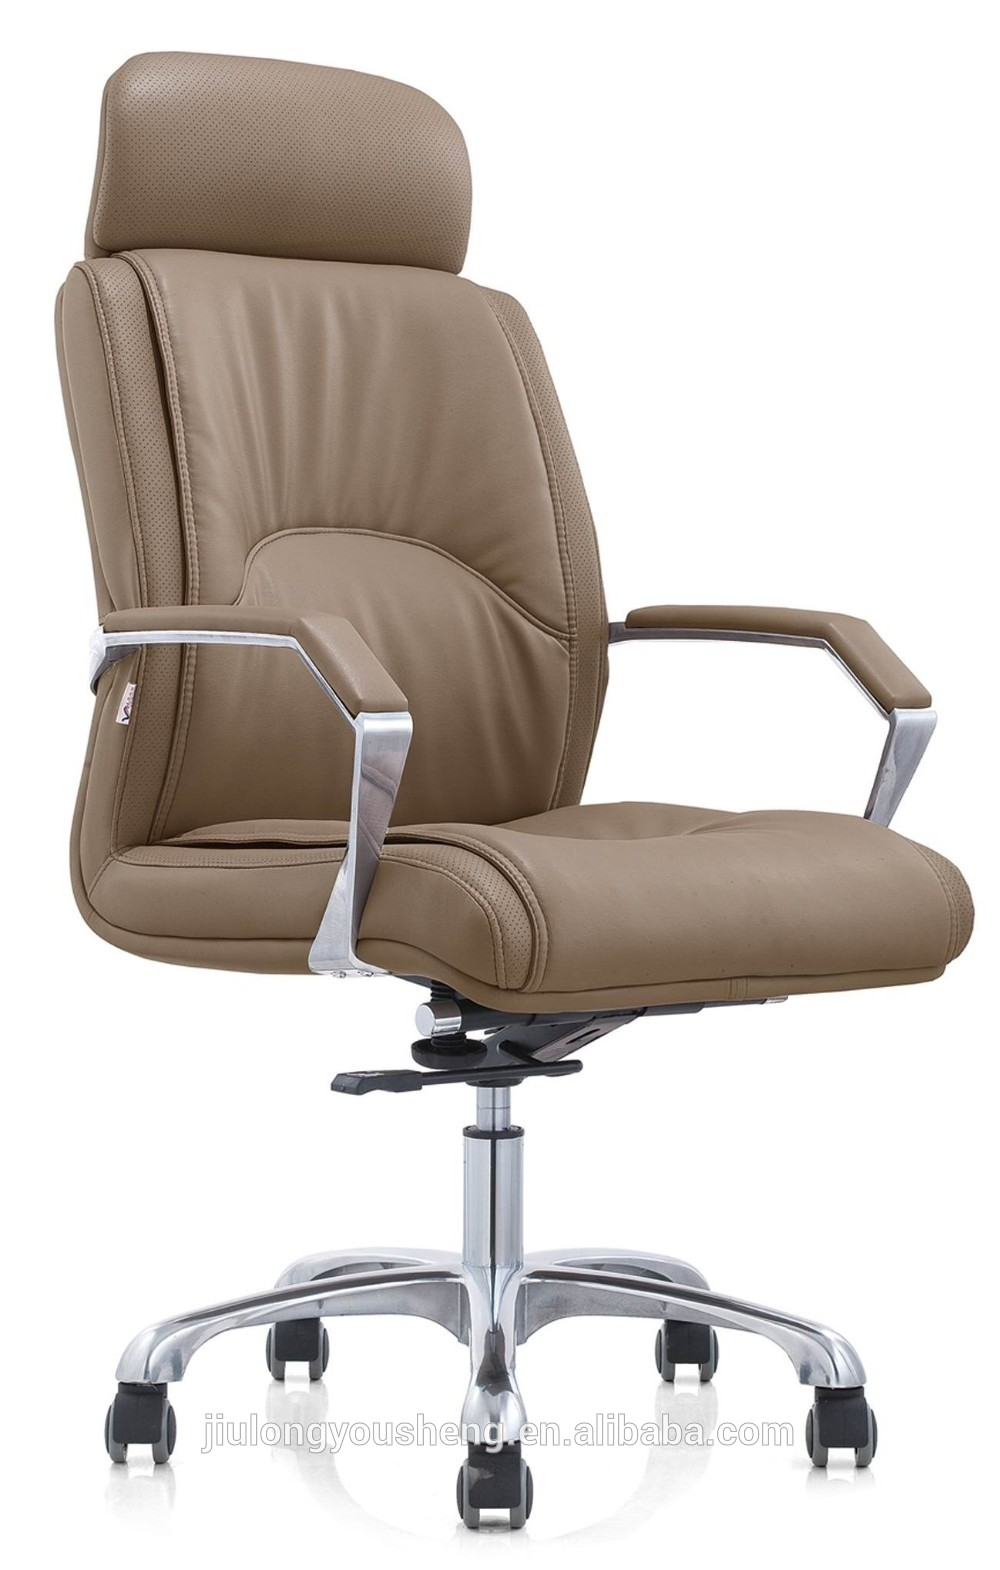 Computer Chair Ergonomically Correct Accent Chairs Office Furniture Computer Chair Ergonomic Gaming Design Qg046 Buy Accent Chairs Furniture Chair Gaming Computer Chair Gaming Product